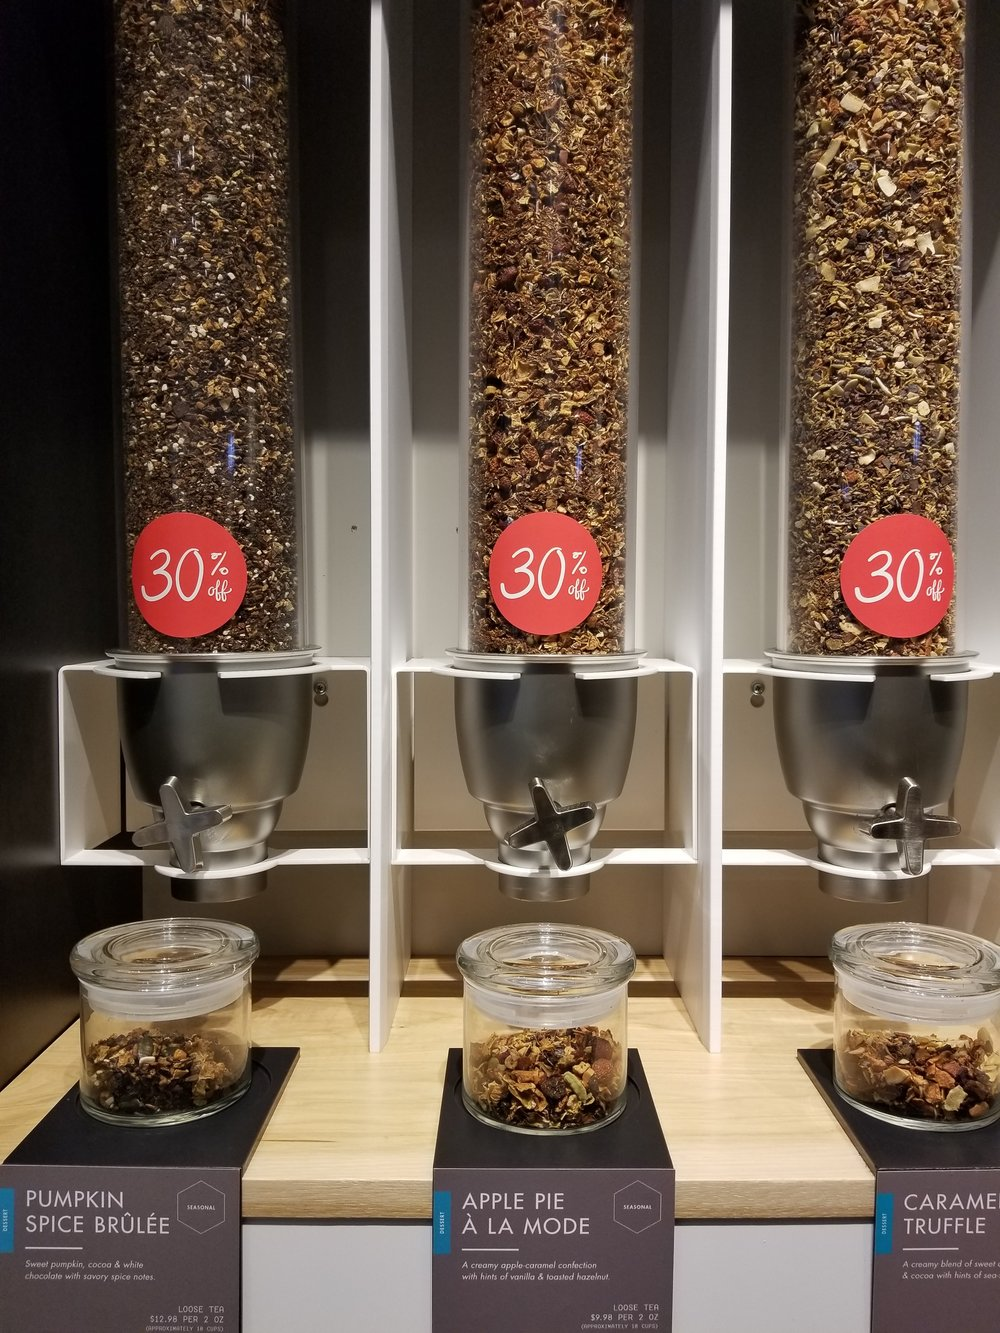 Bellevue Square Teavana 23 Sept 2017 - 11.jpg